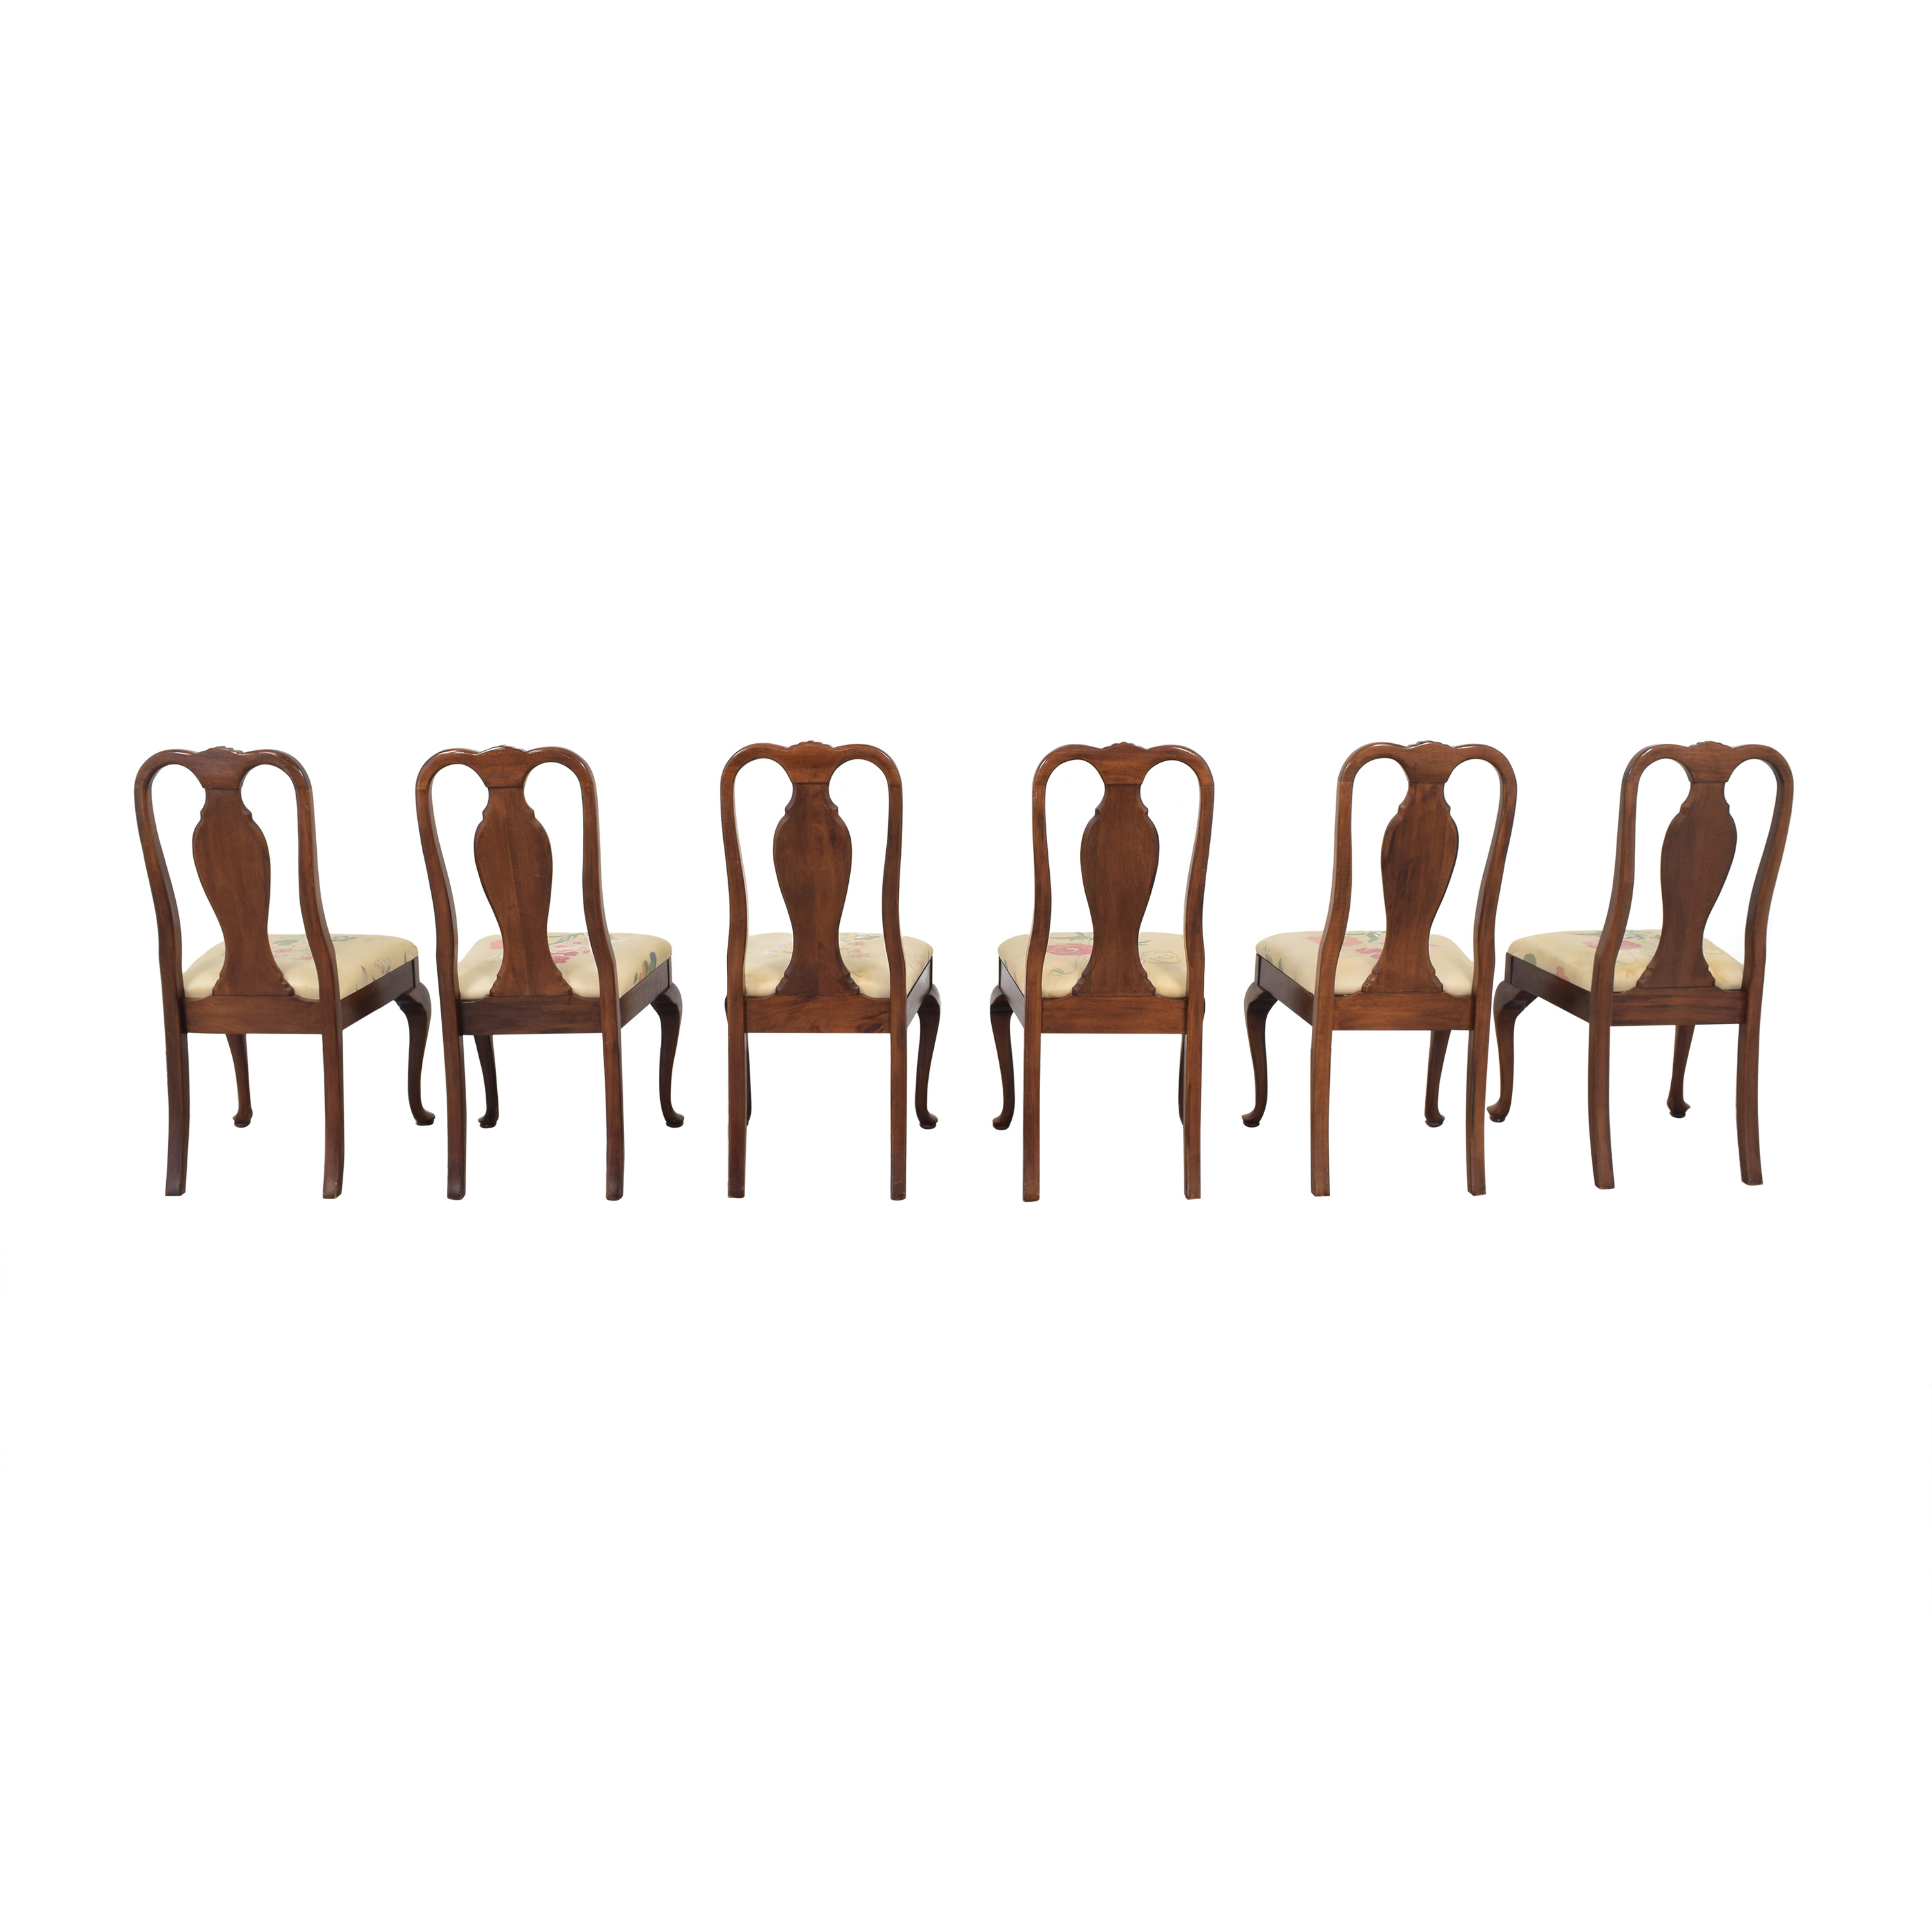 Davis Cabinet Company Dining Chairs / Dining Chairs